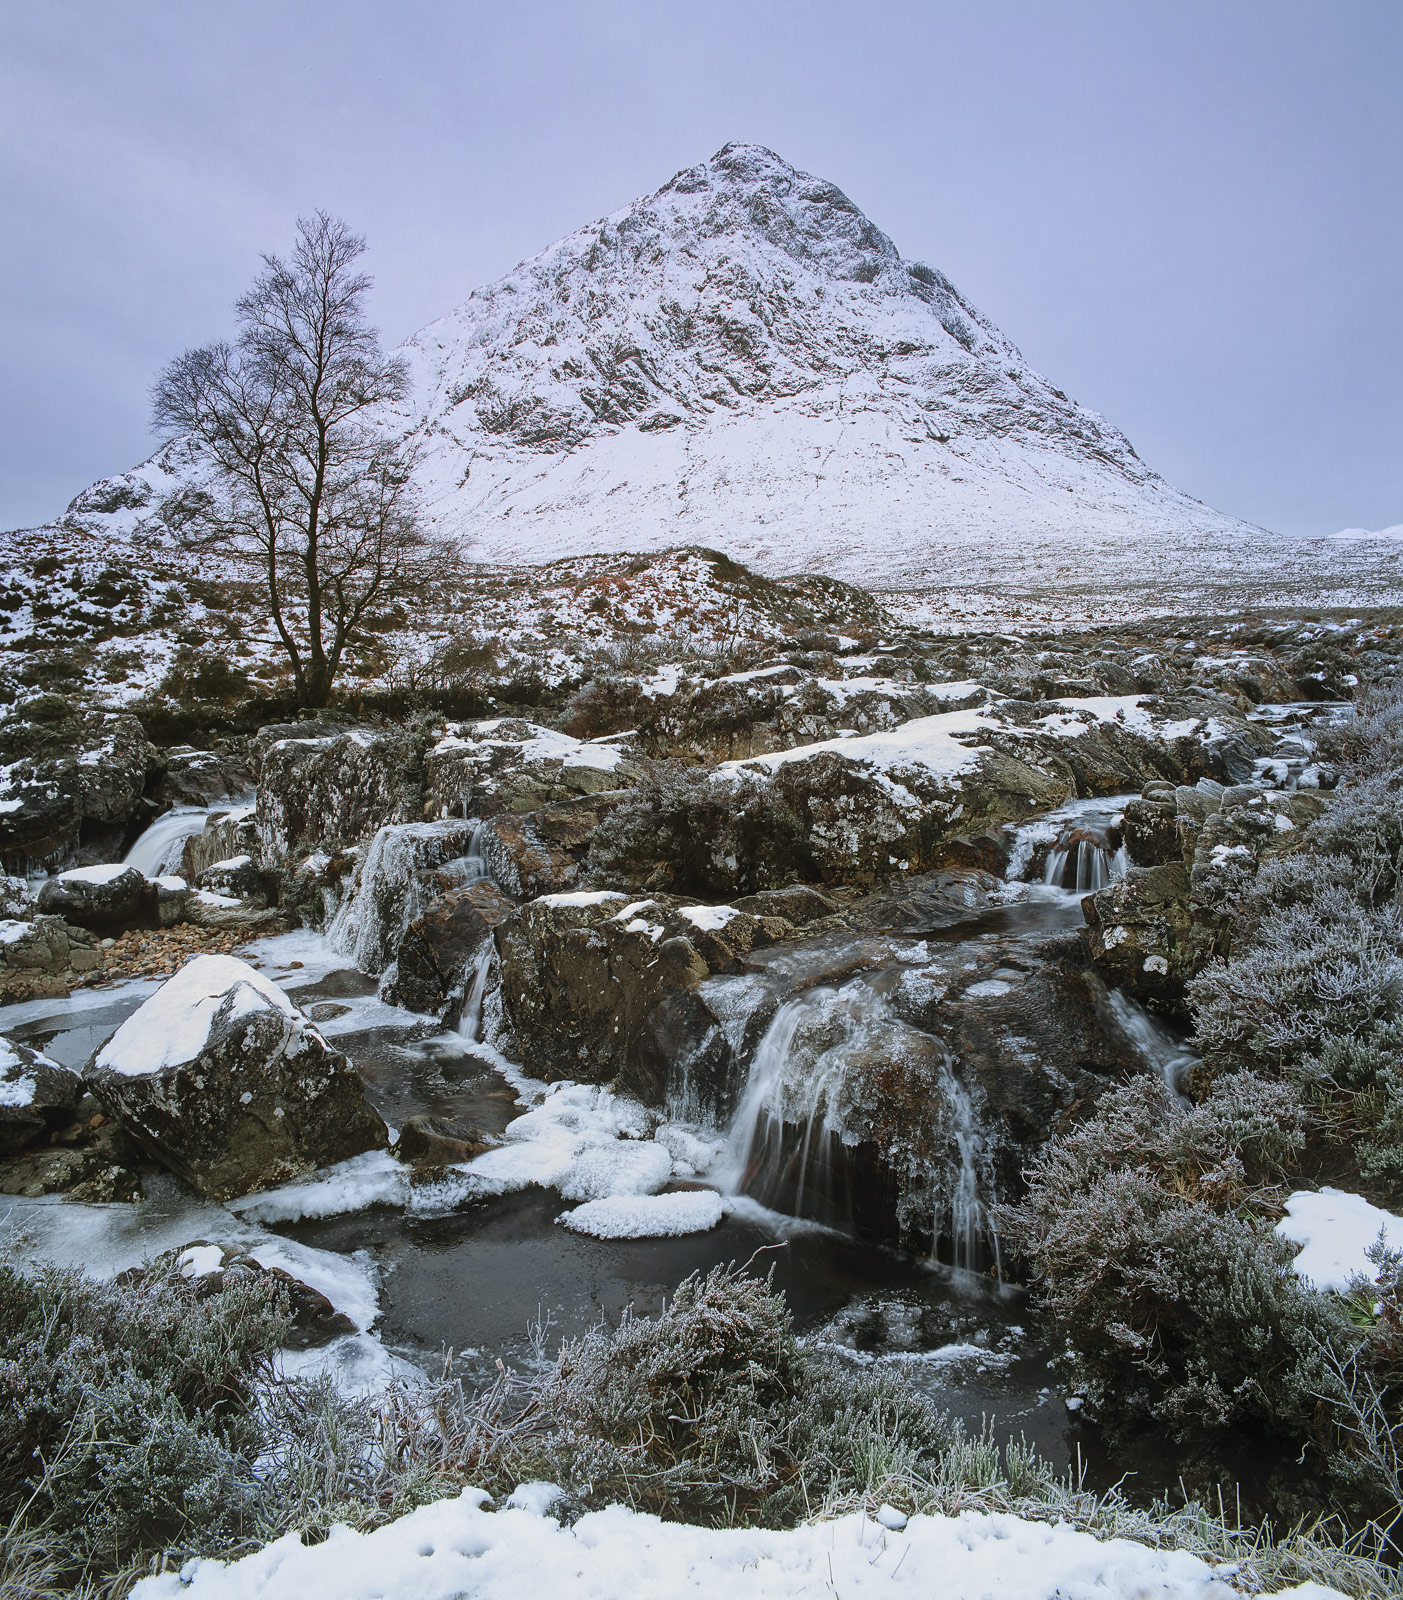 The looming pyramid of the Buachaille Etive Mor Lords it over the desolation of Rannoch moor on a freezing cold and sombre winter...